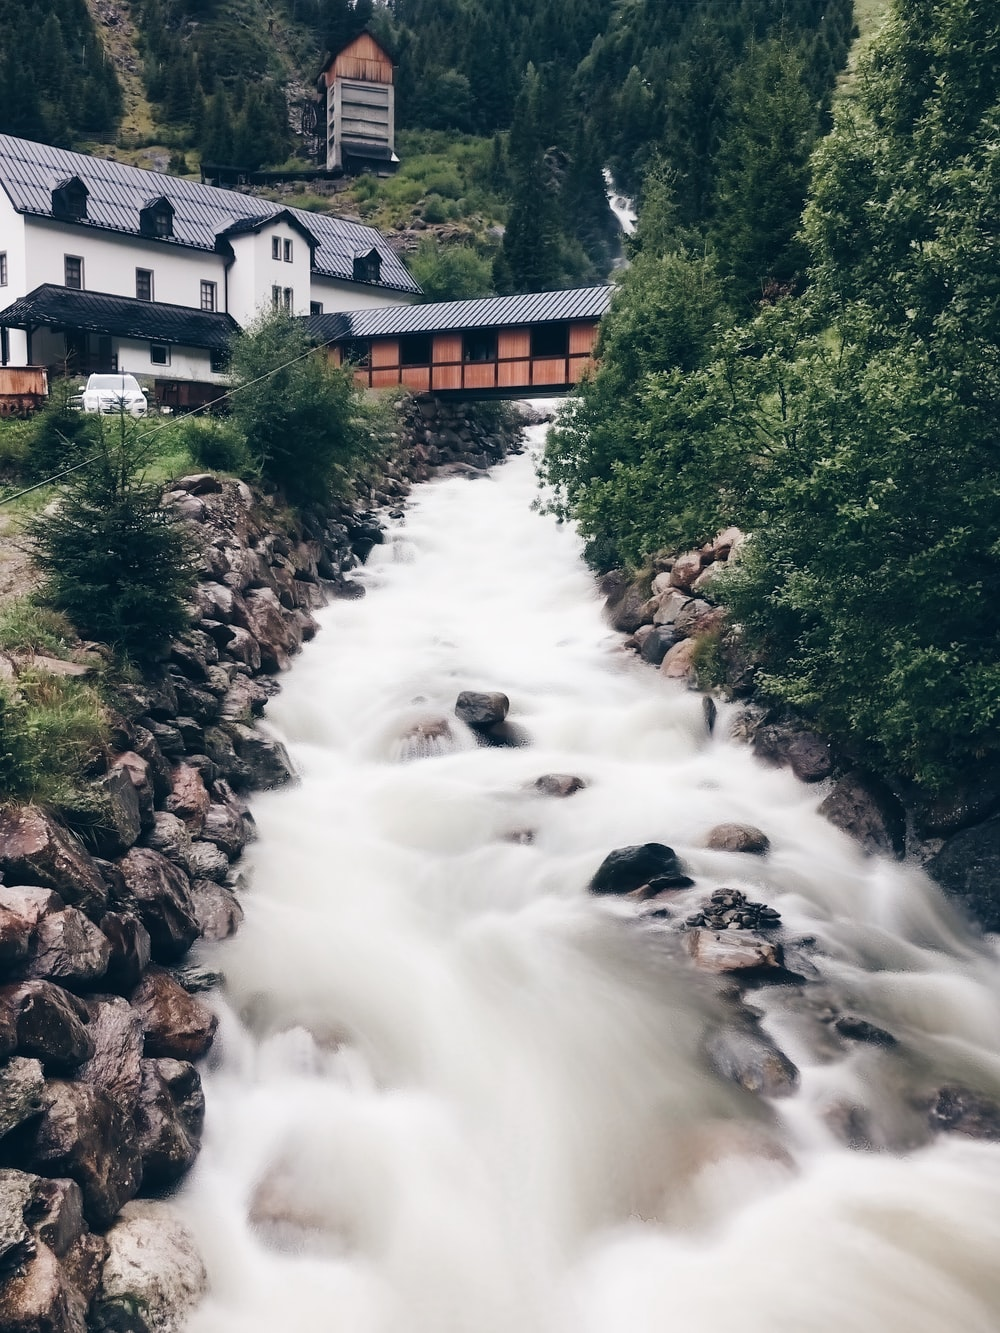 time lapse photography of stream near houses